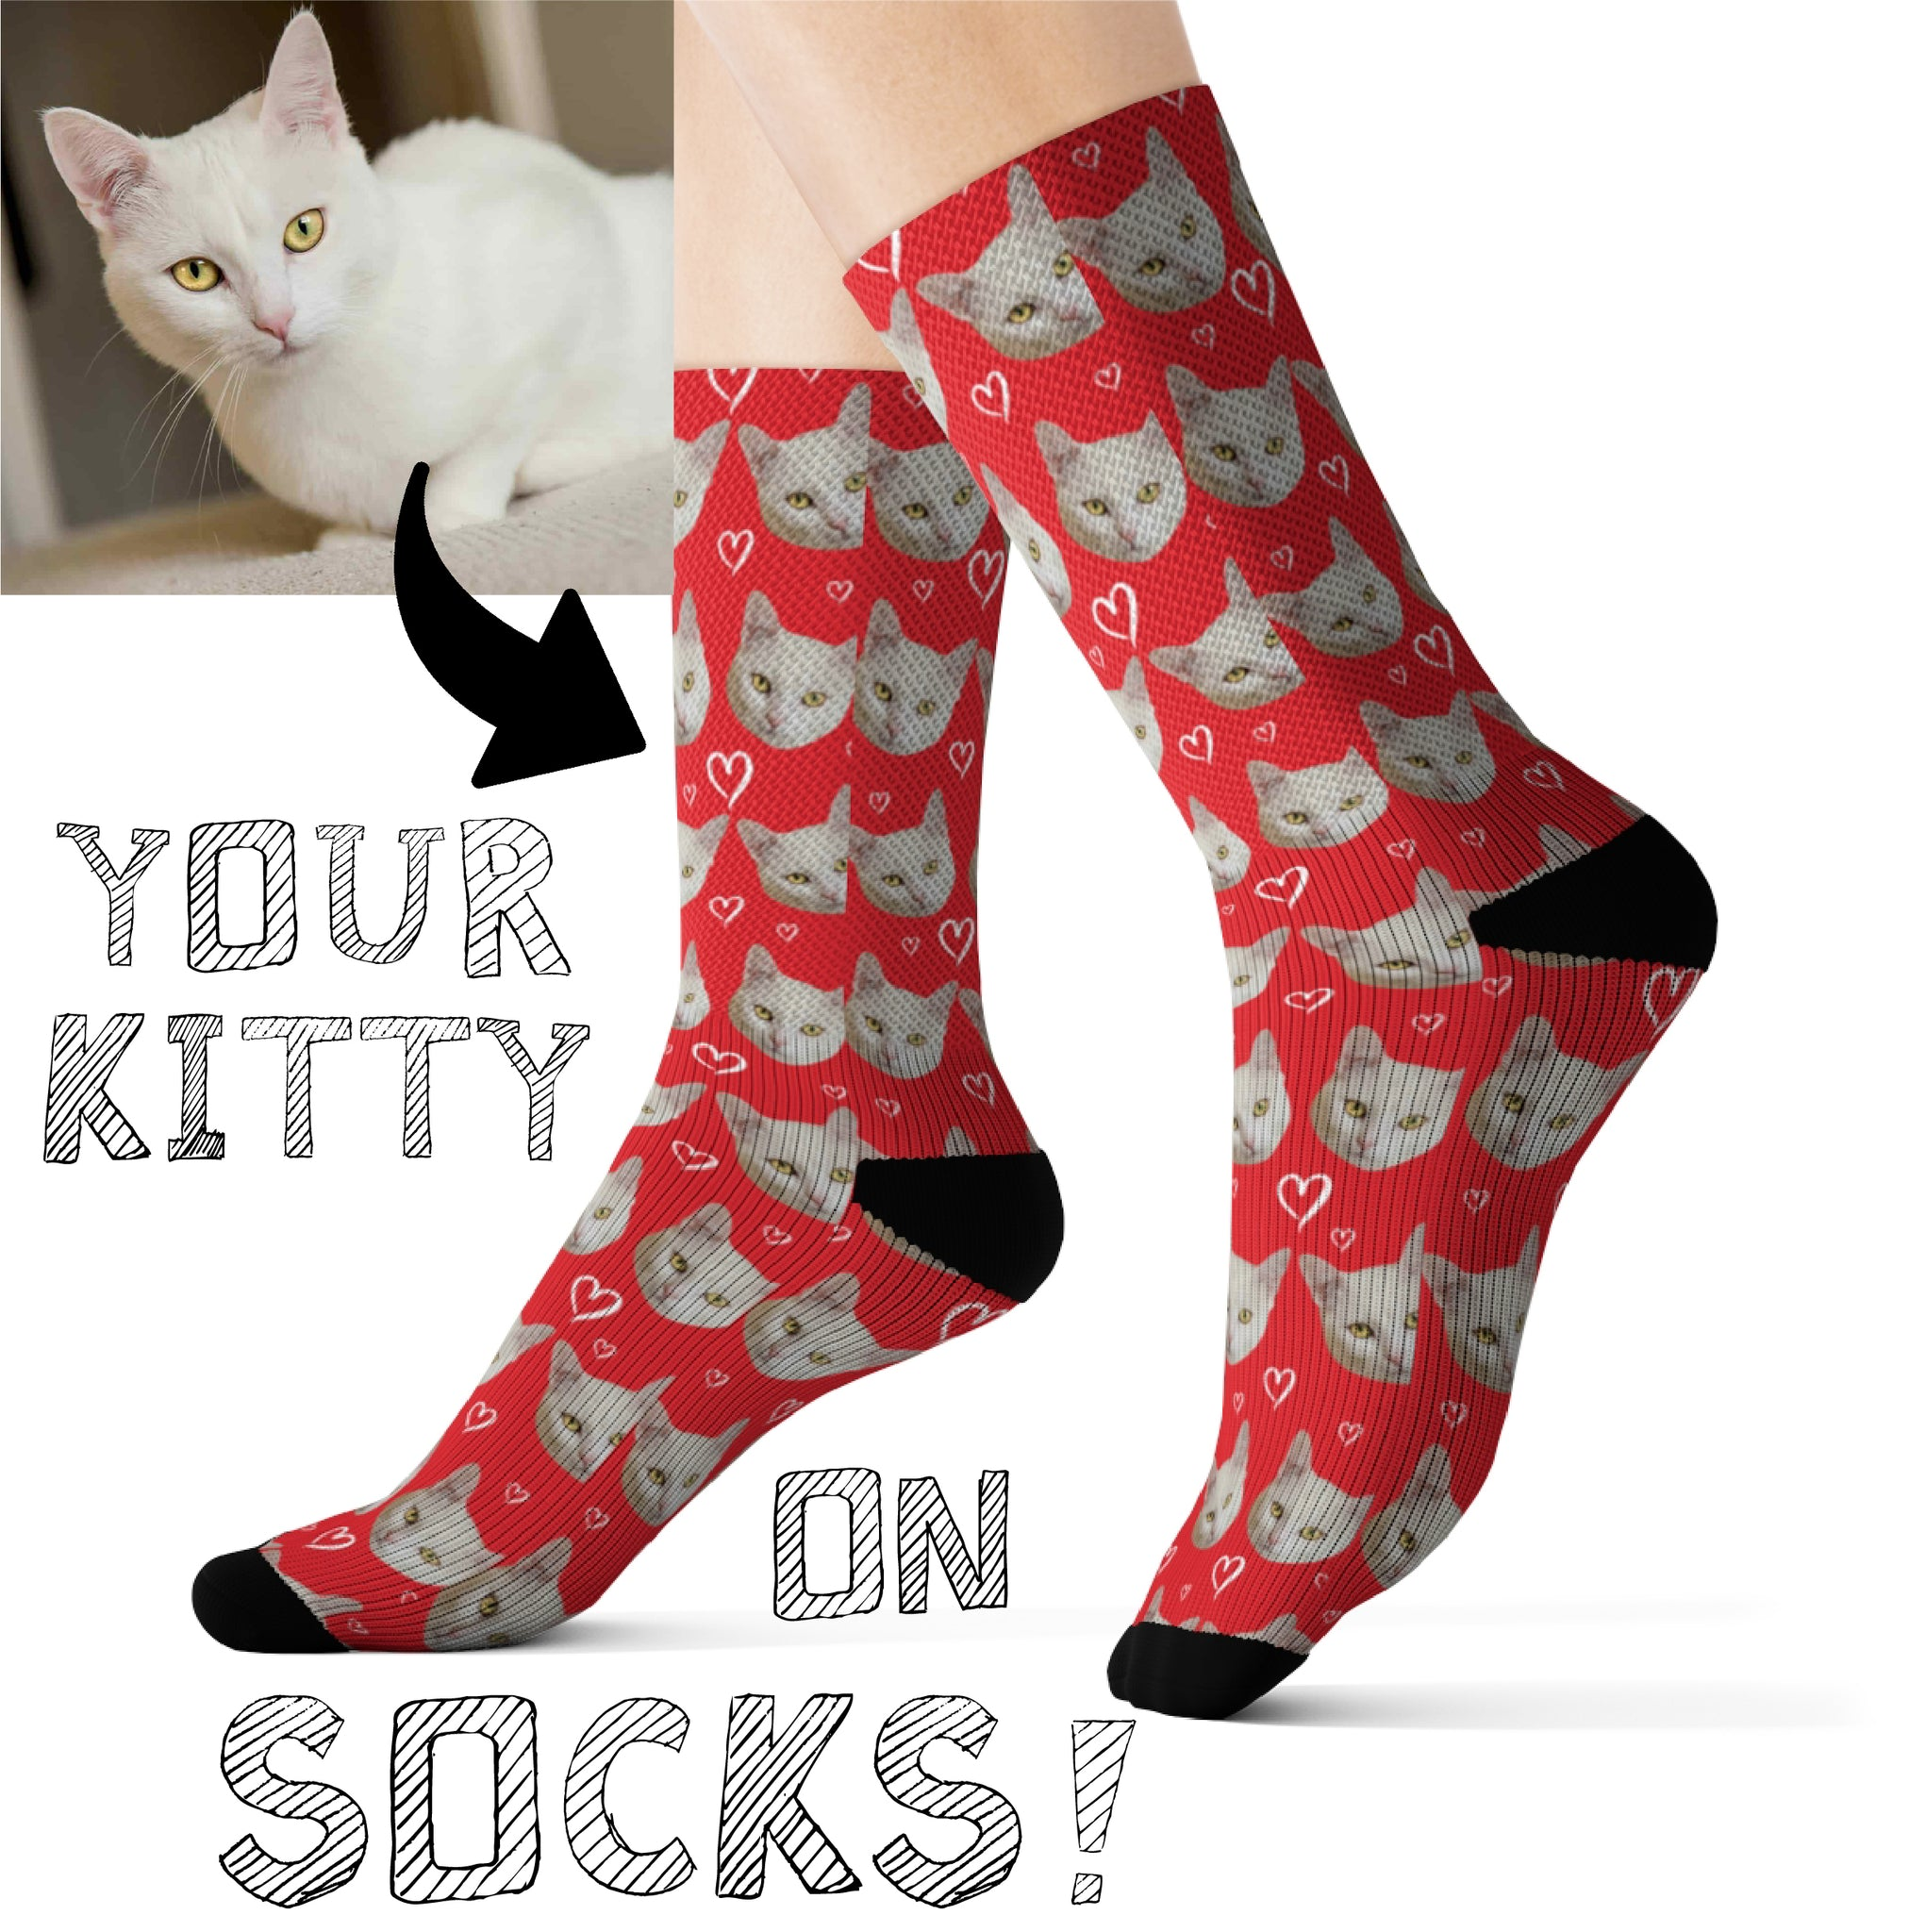 Your Kitty Face on Socks Buy 1 Get 2 (Free Shipping)